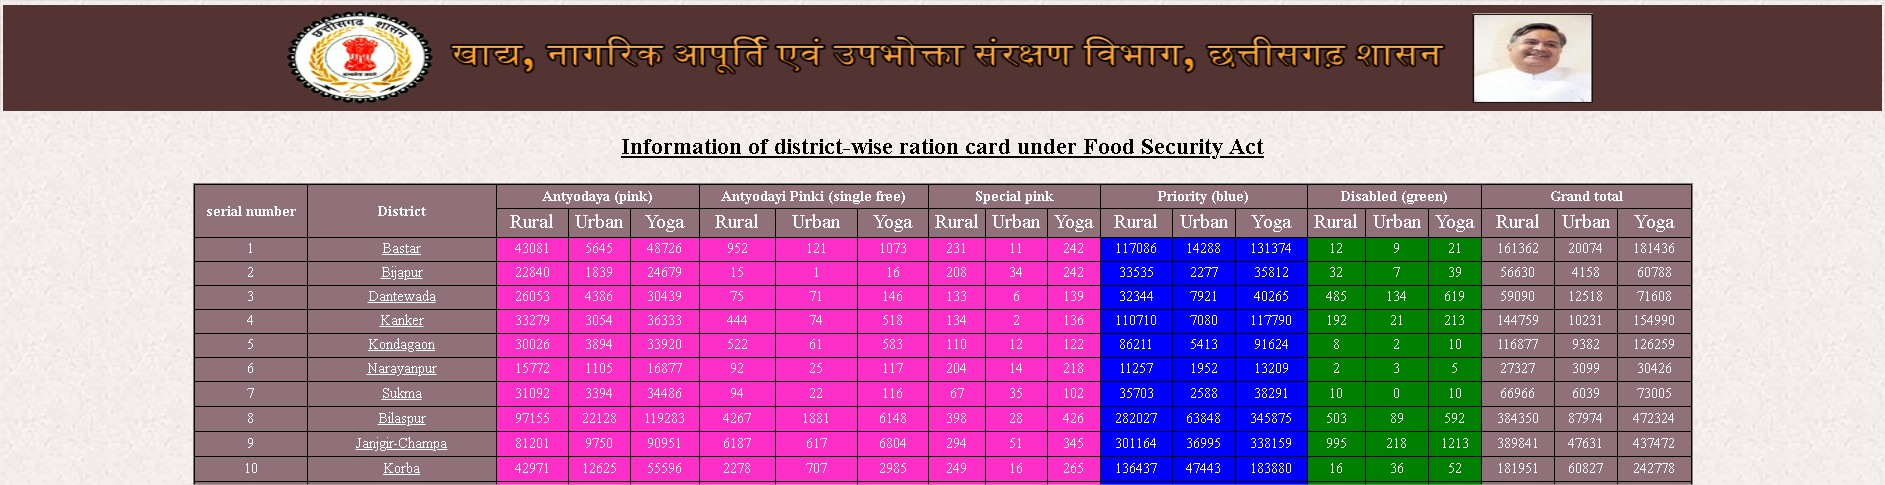 CG Khadya Ration Card